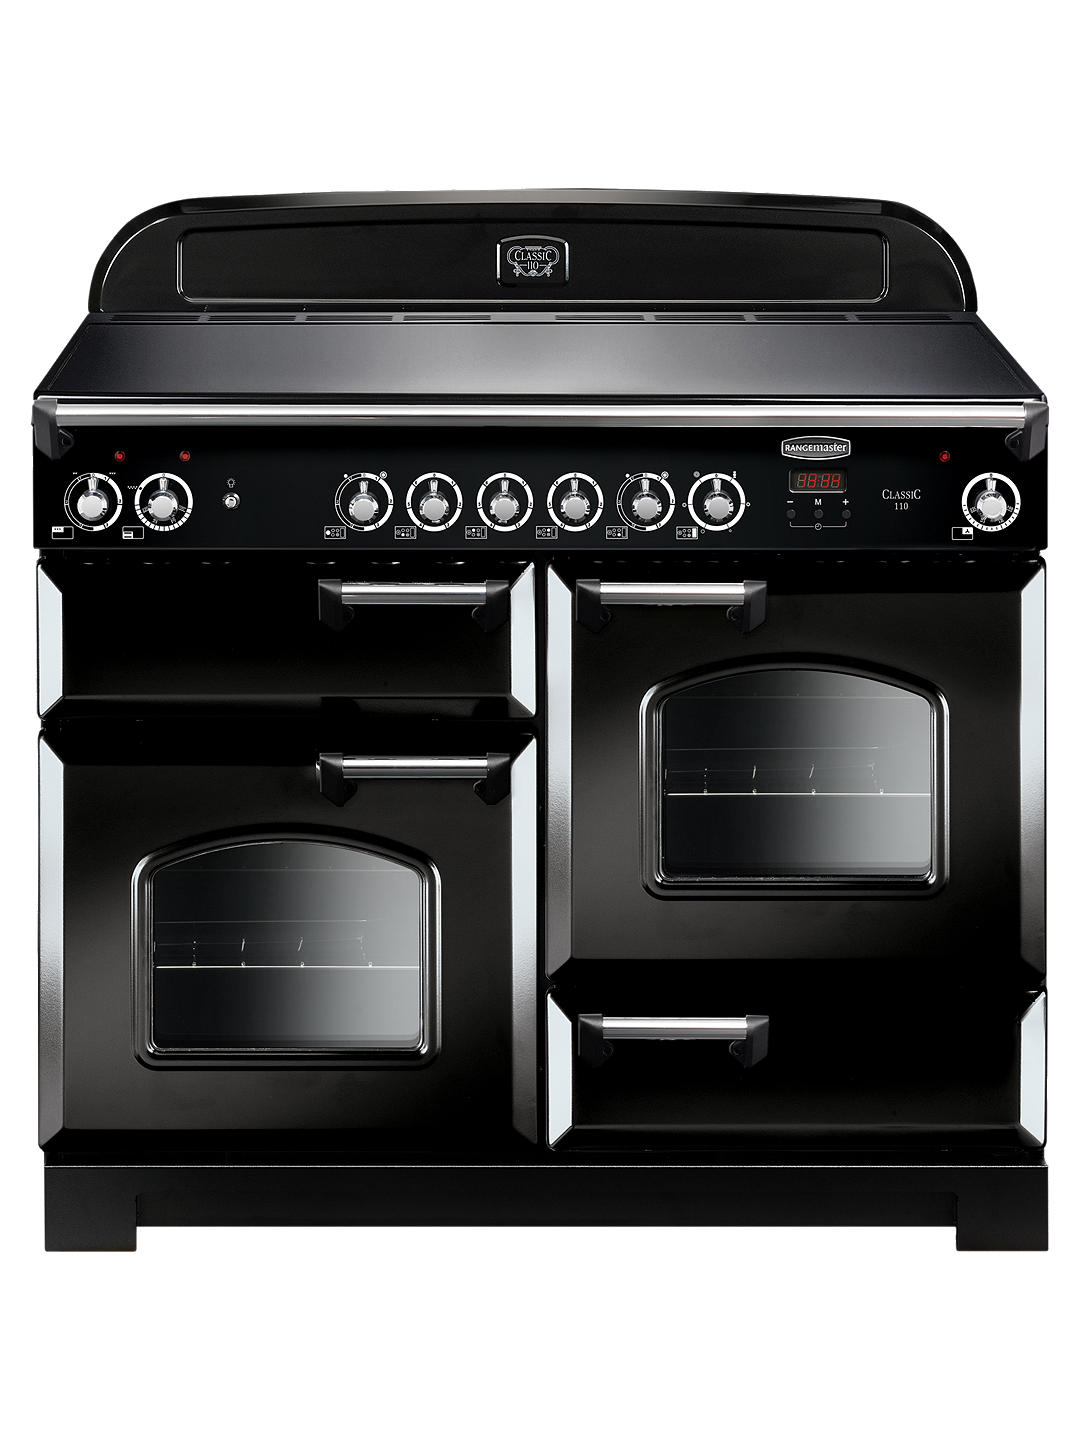 Buy Rangemaster Classic 110 Electric Range Cooker, Black Online at johnlewis.com